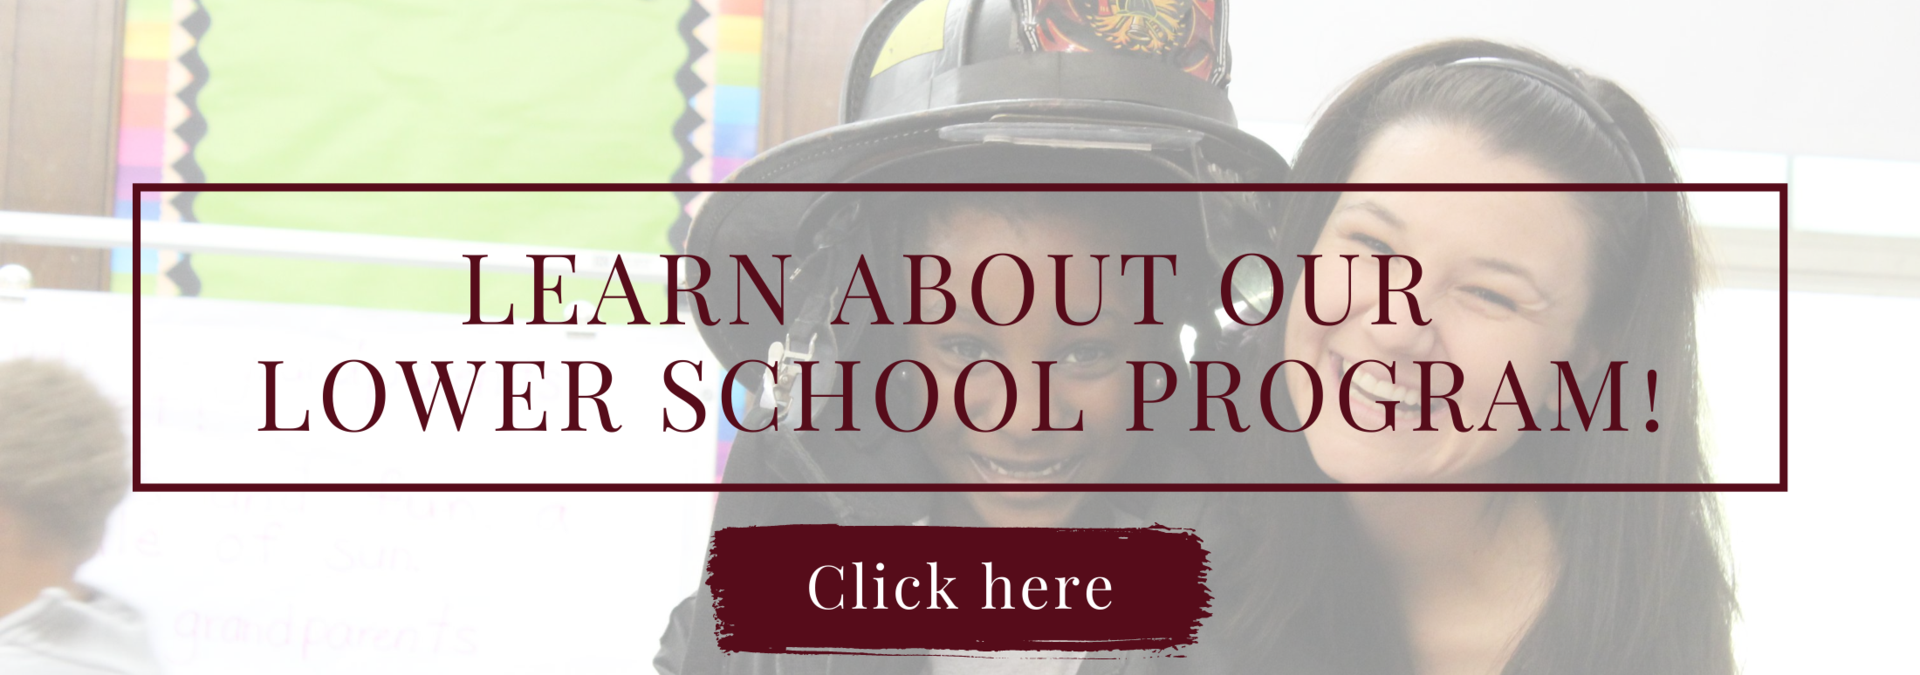 Learn about our Lower School Program!